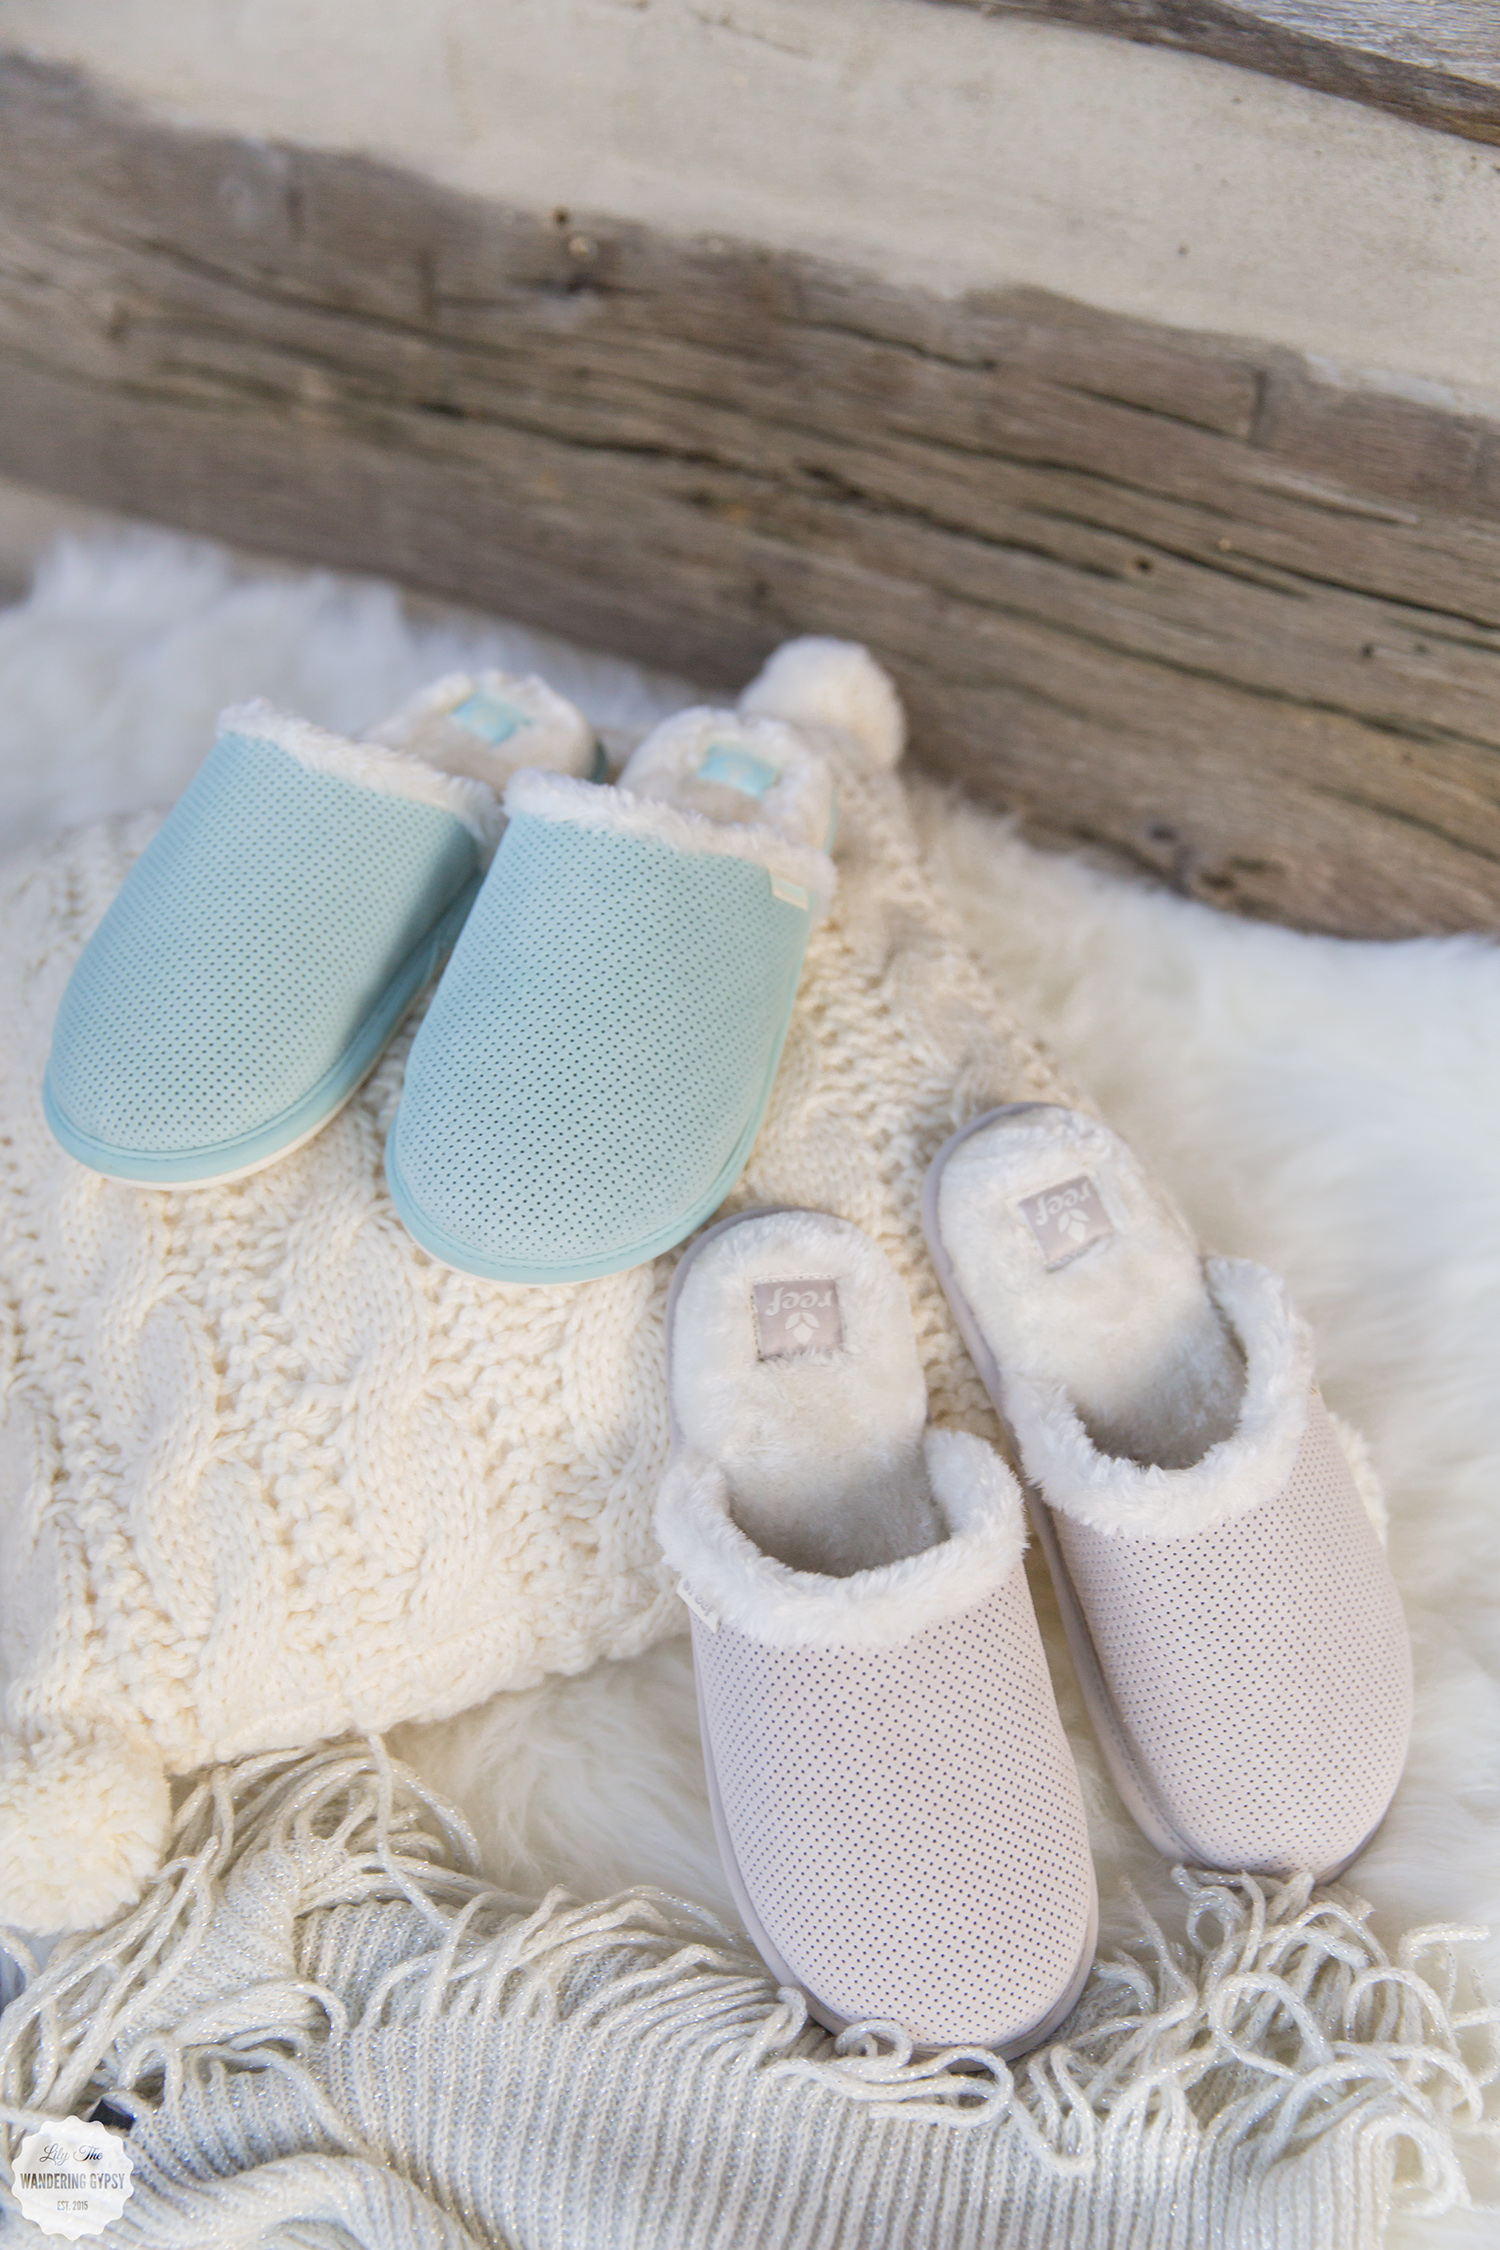 Cozy Slippers by Reef.com ~ Lily The Wandering Gypsy